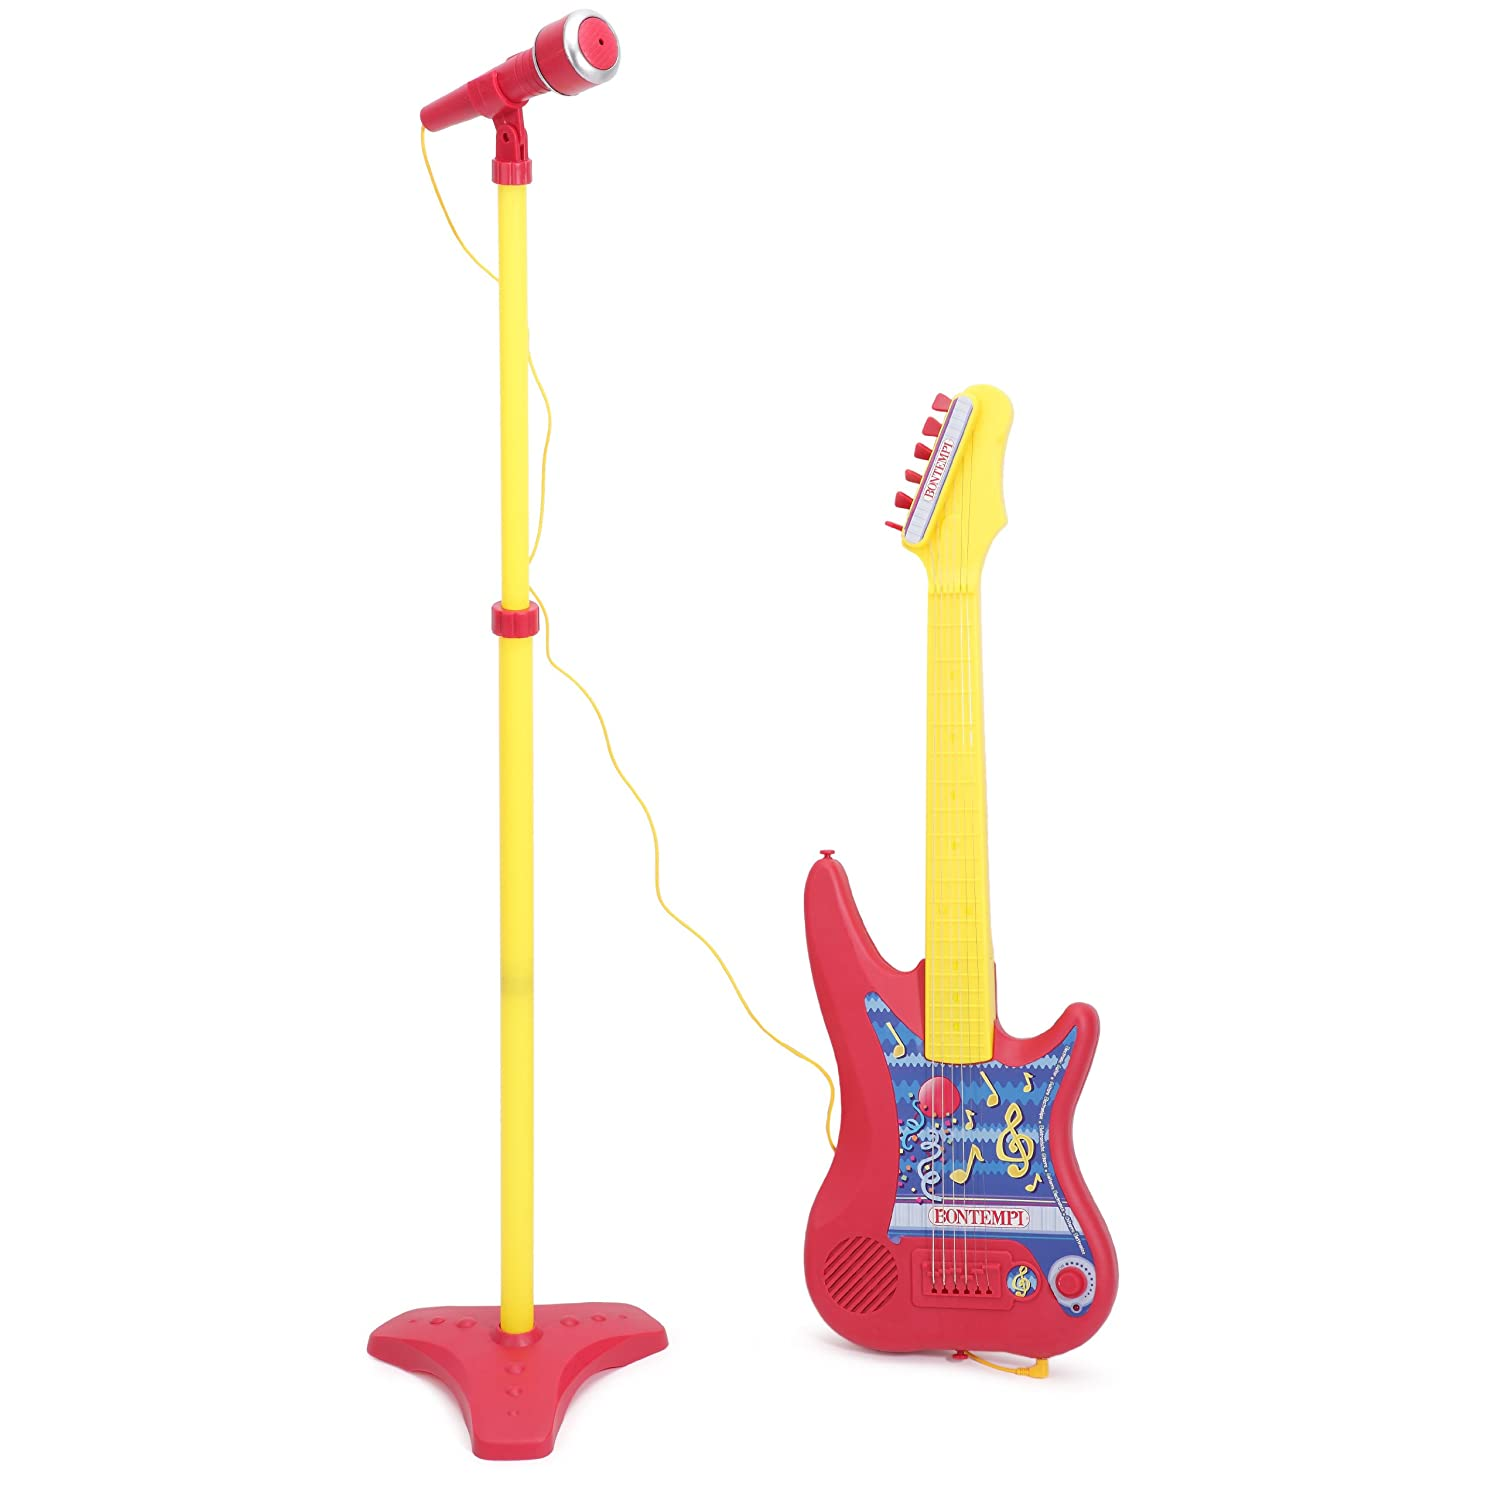 hey music musique micro guitare rose jouets instruments musicaux pour enfant achat en. Black Bedroom Furniture Sets. Home Design Ideas